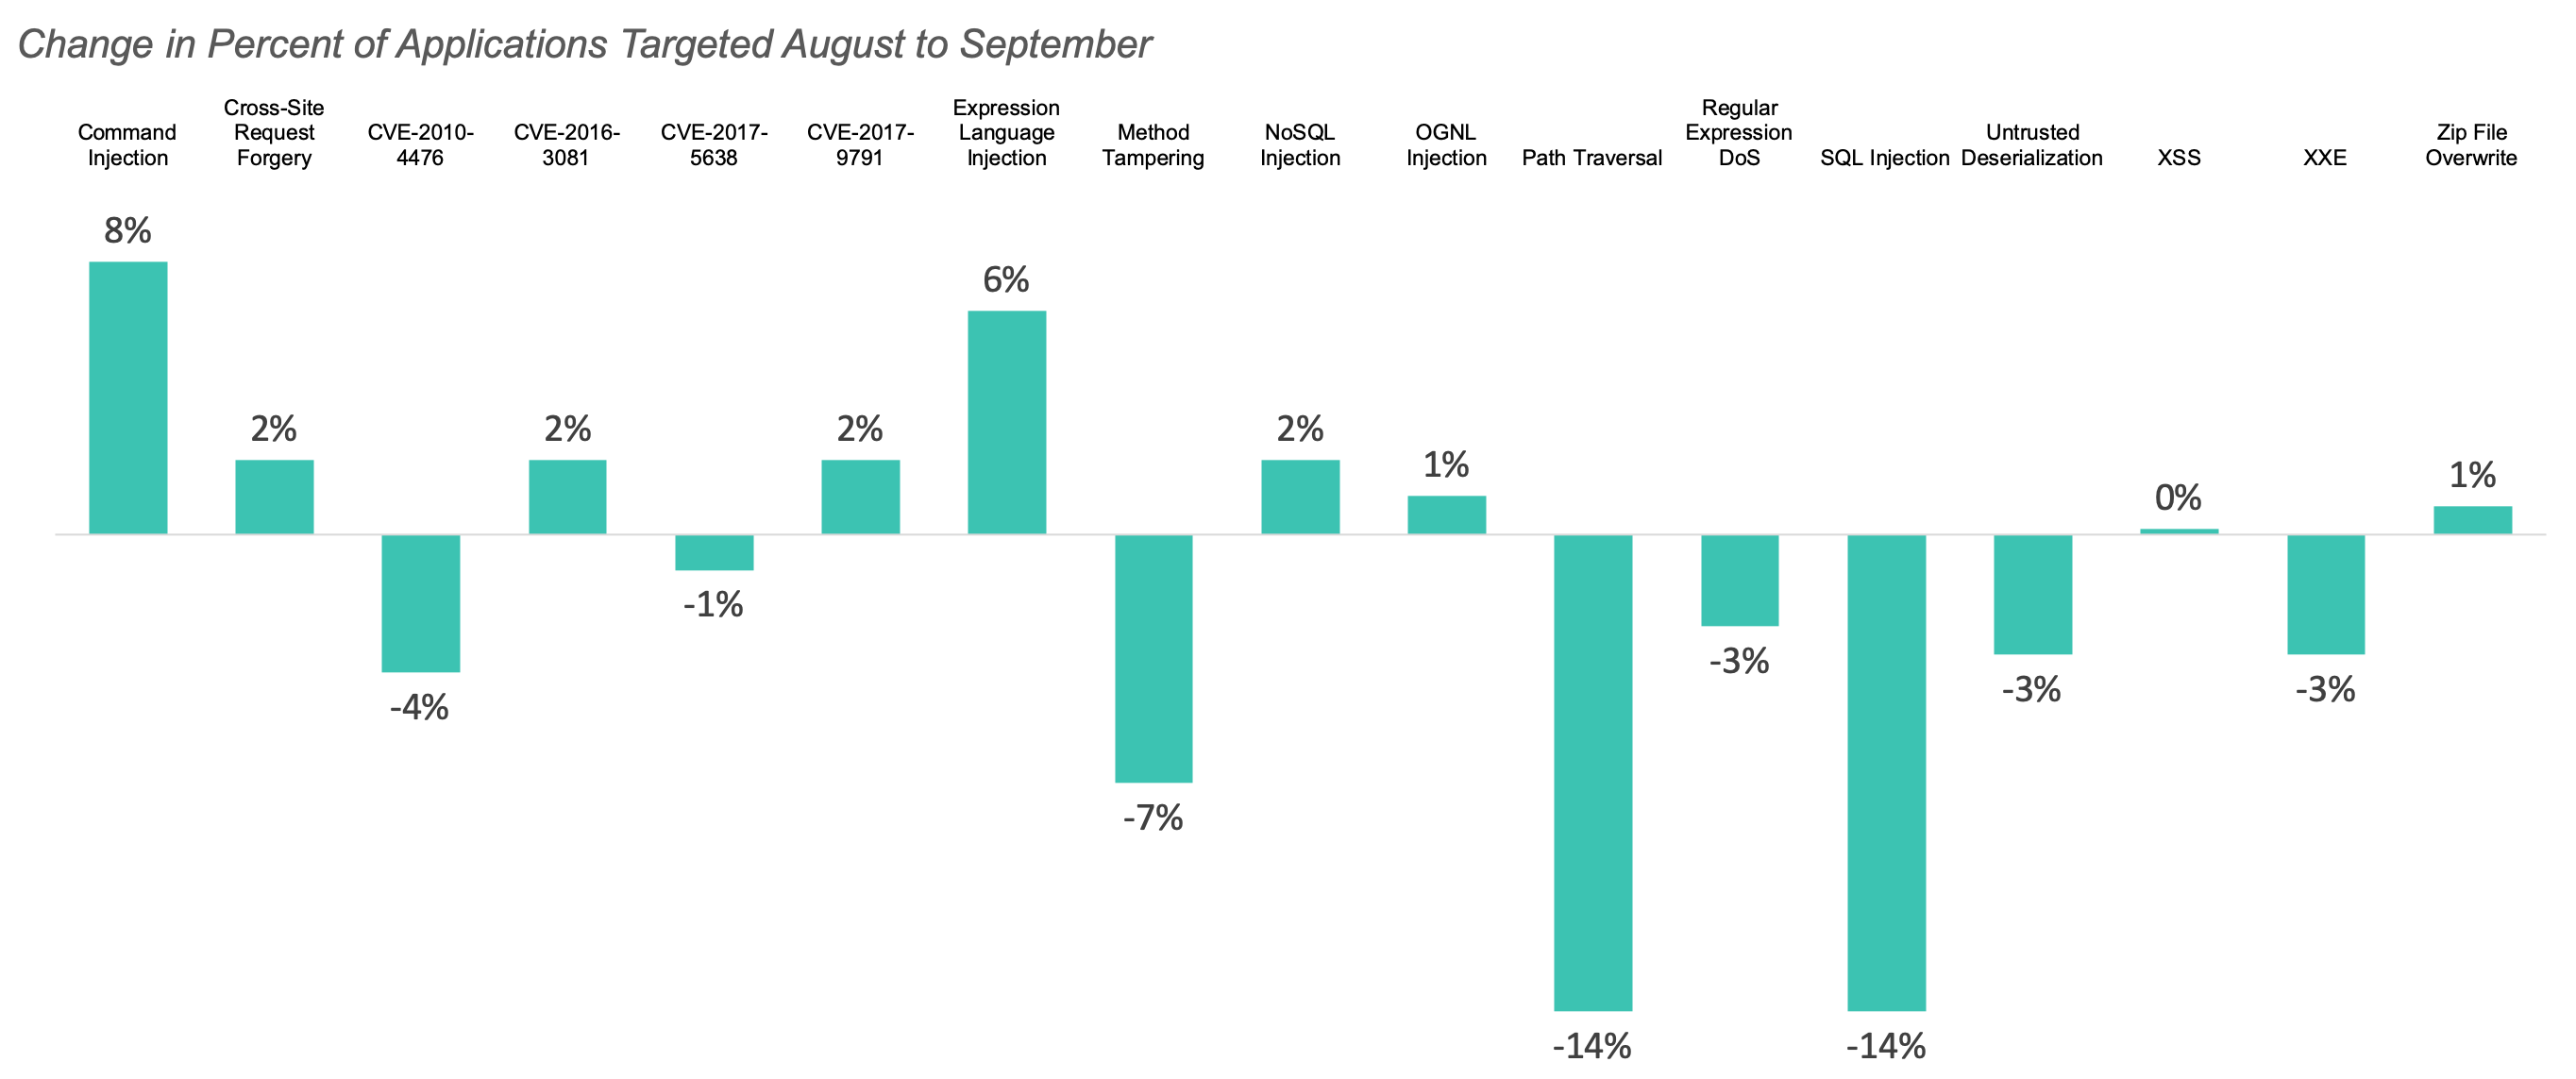 Change in percent of applications targeted August to September 2019.